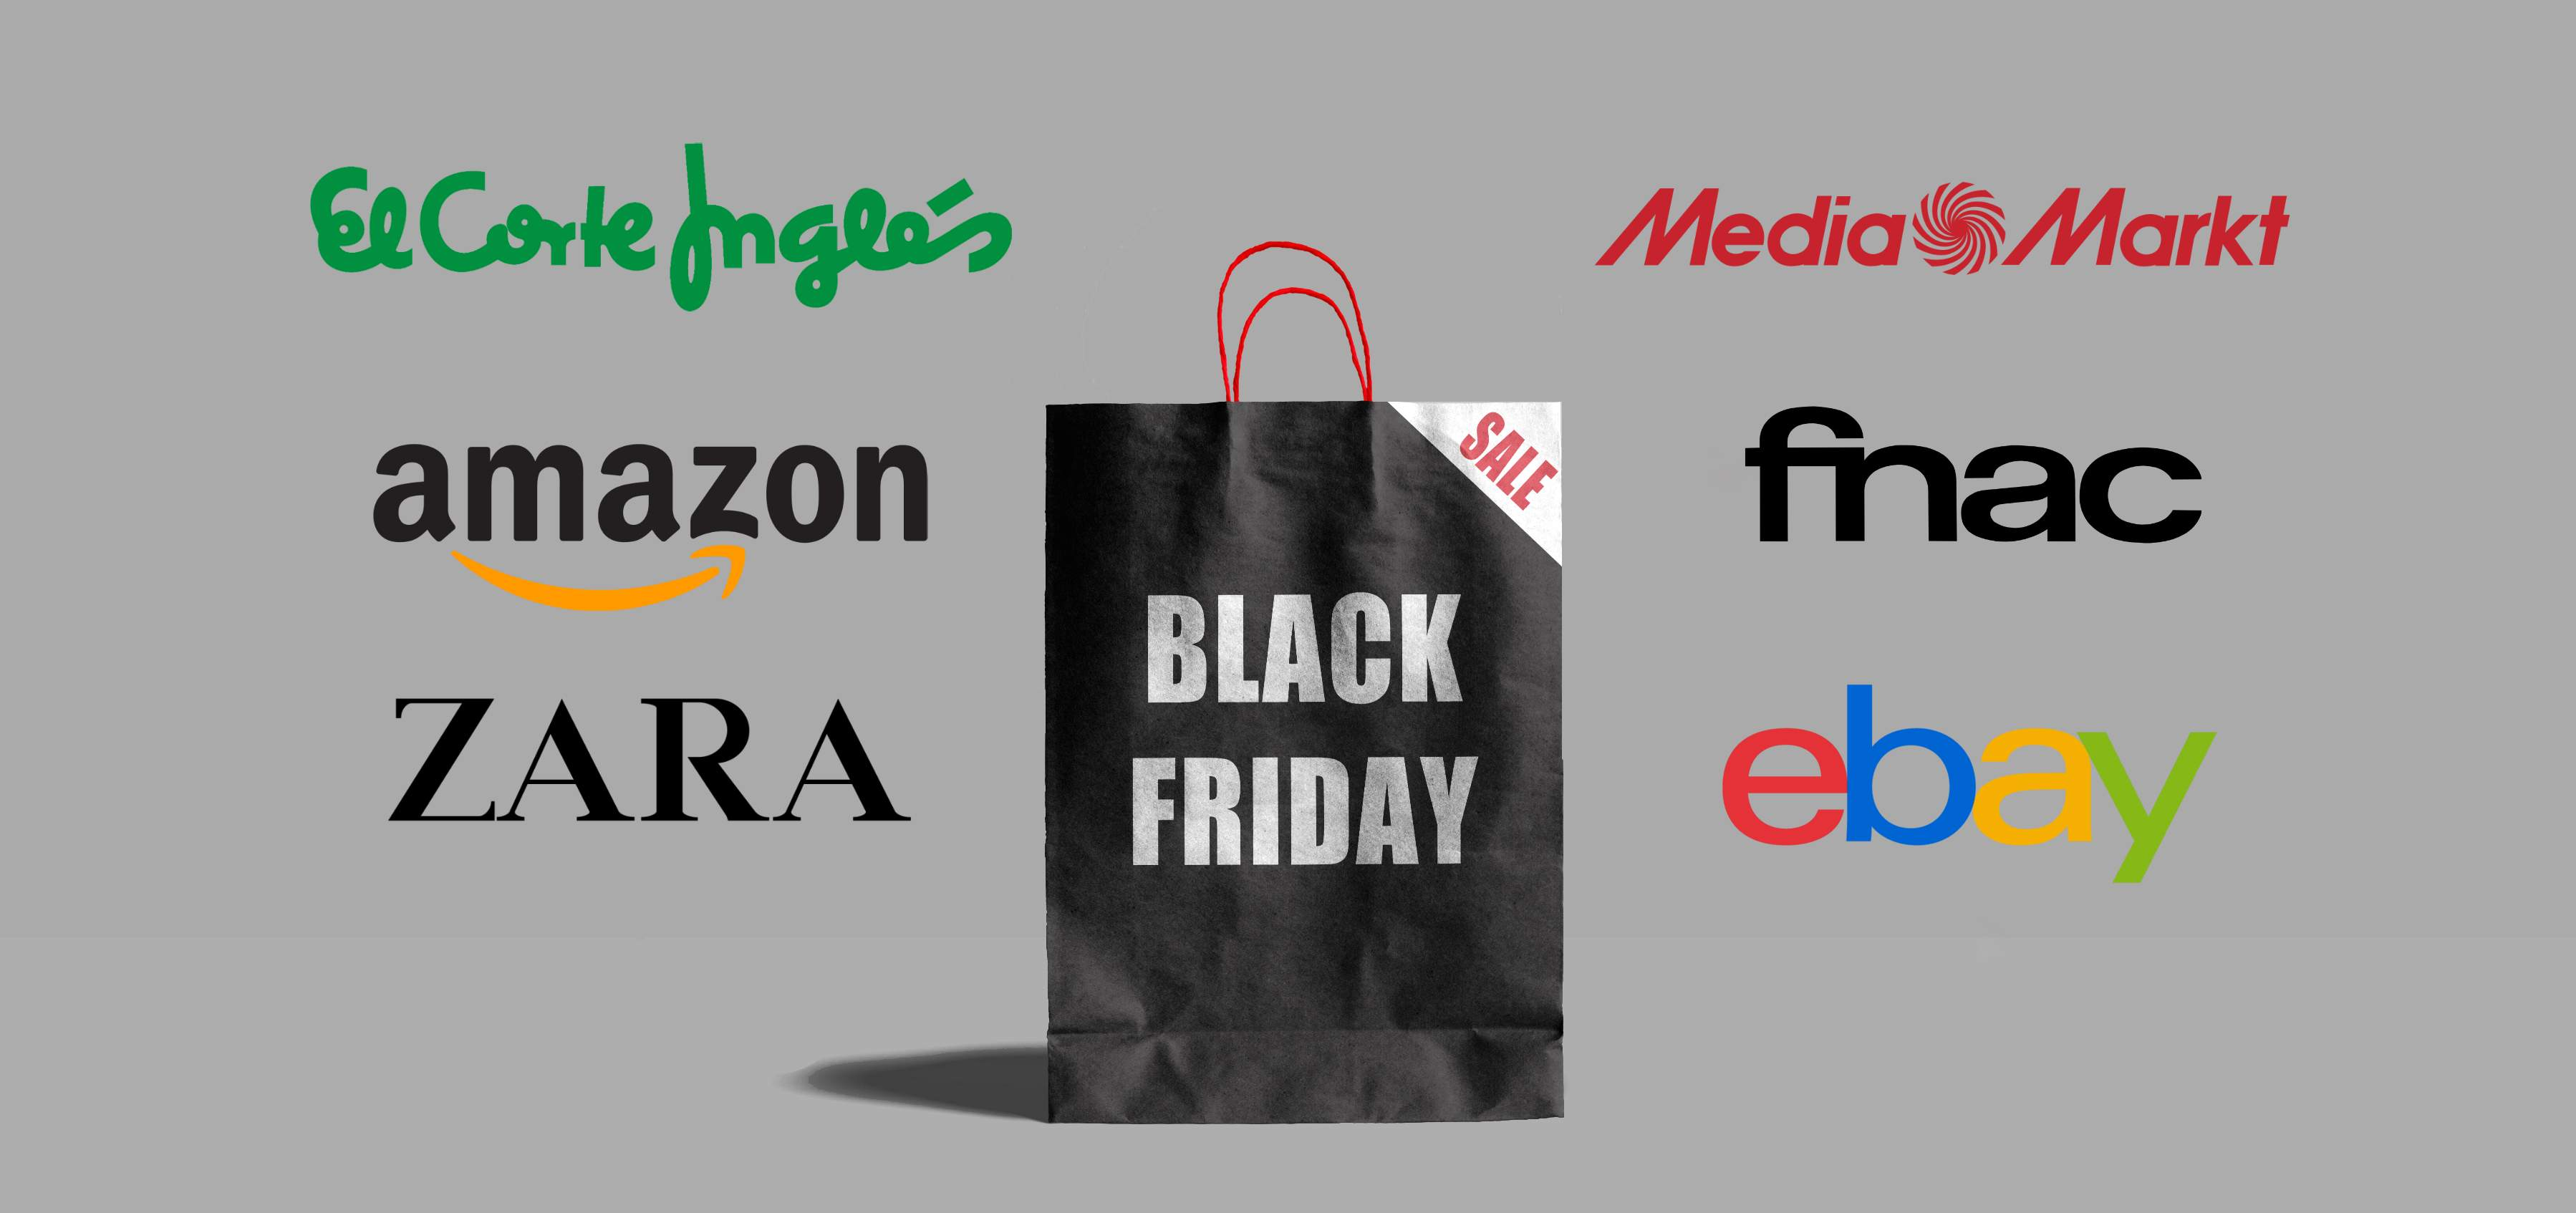 66a4c7d089 Black Friday 2018: ofertas y descuentos de Apple, Amazon, Zara, El Corte  Inglés o Media Markt - elEconomista.es